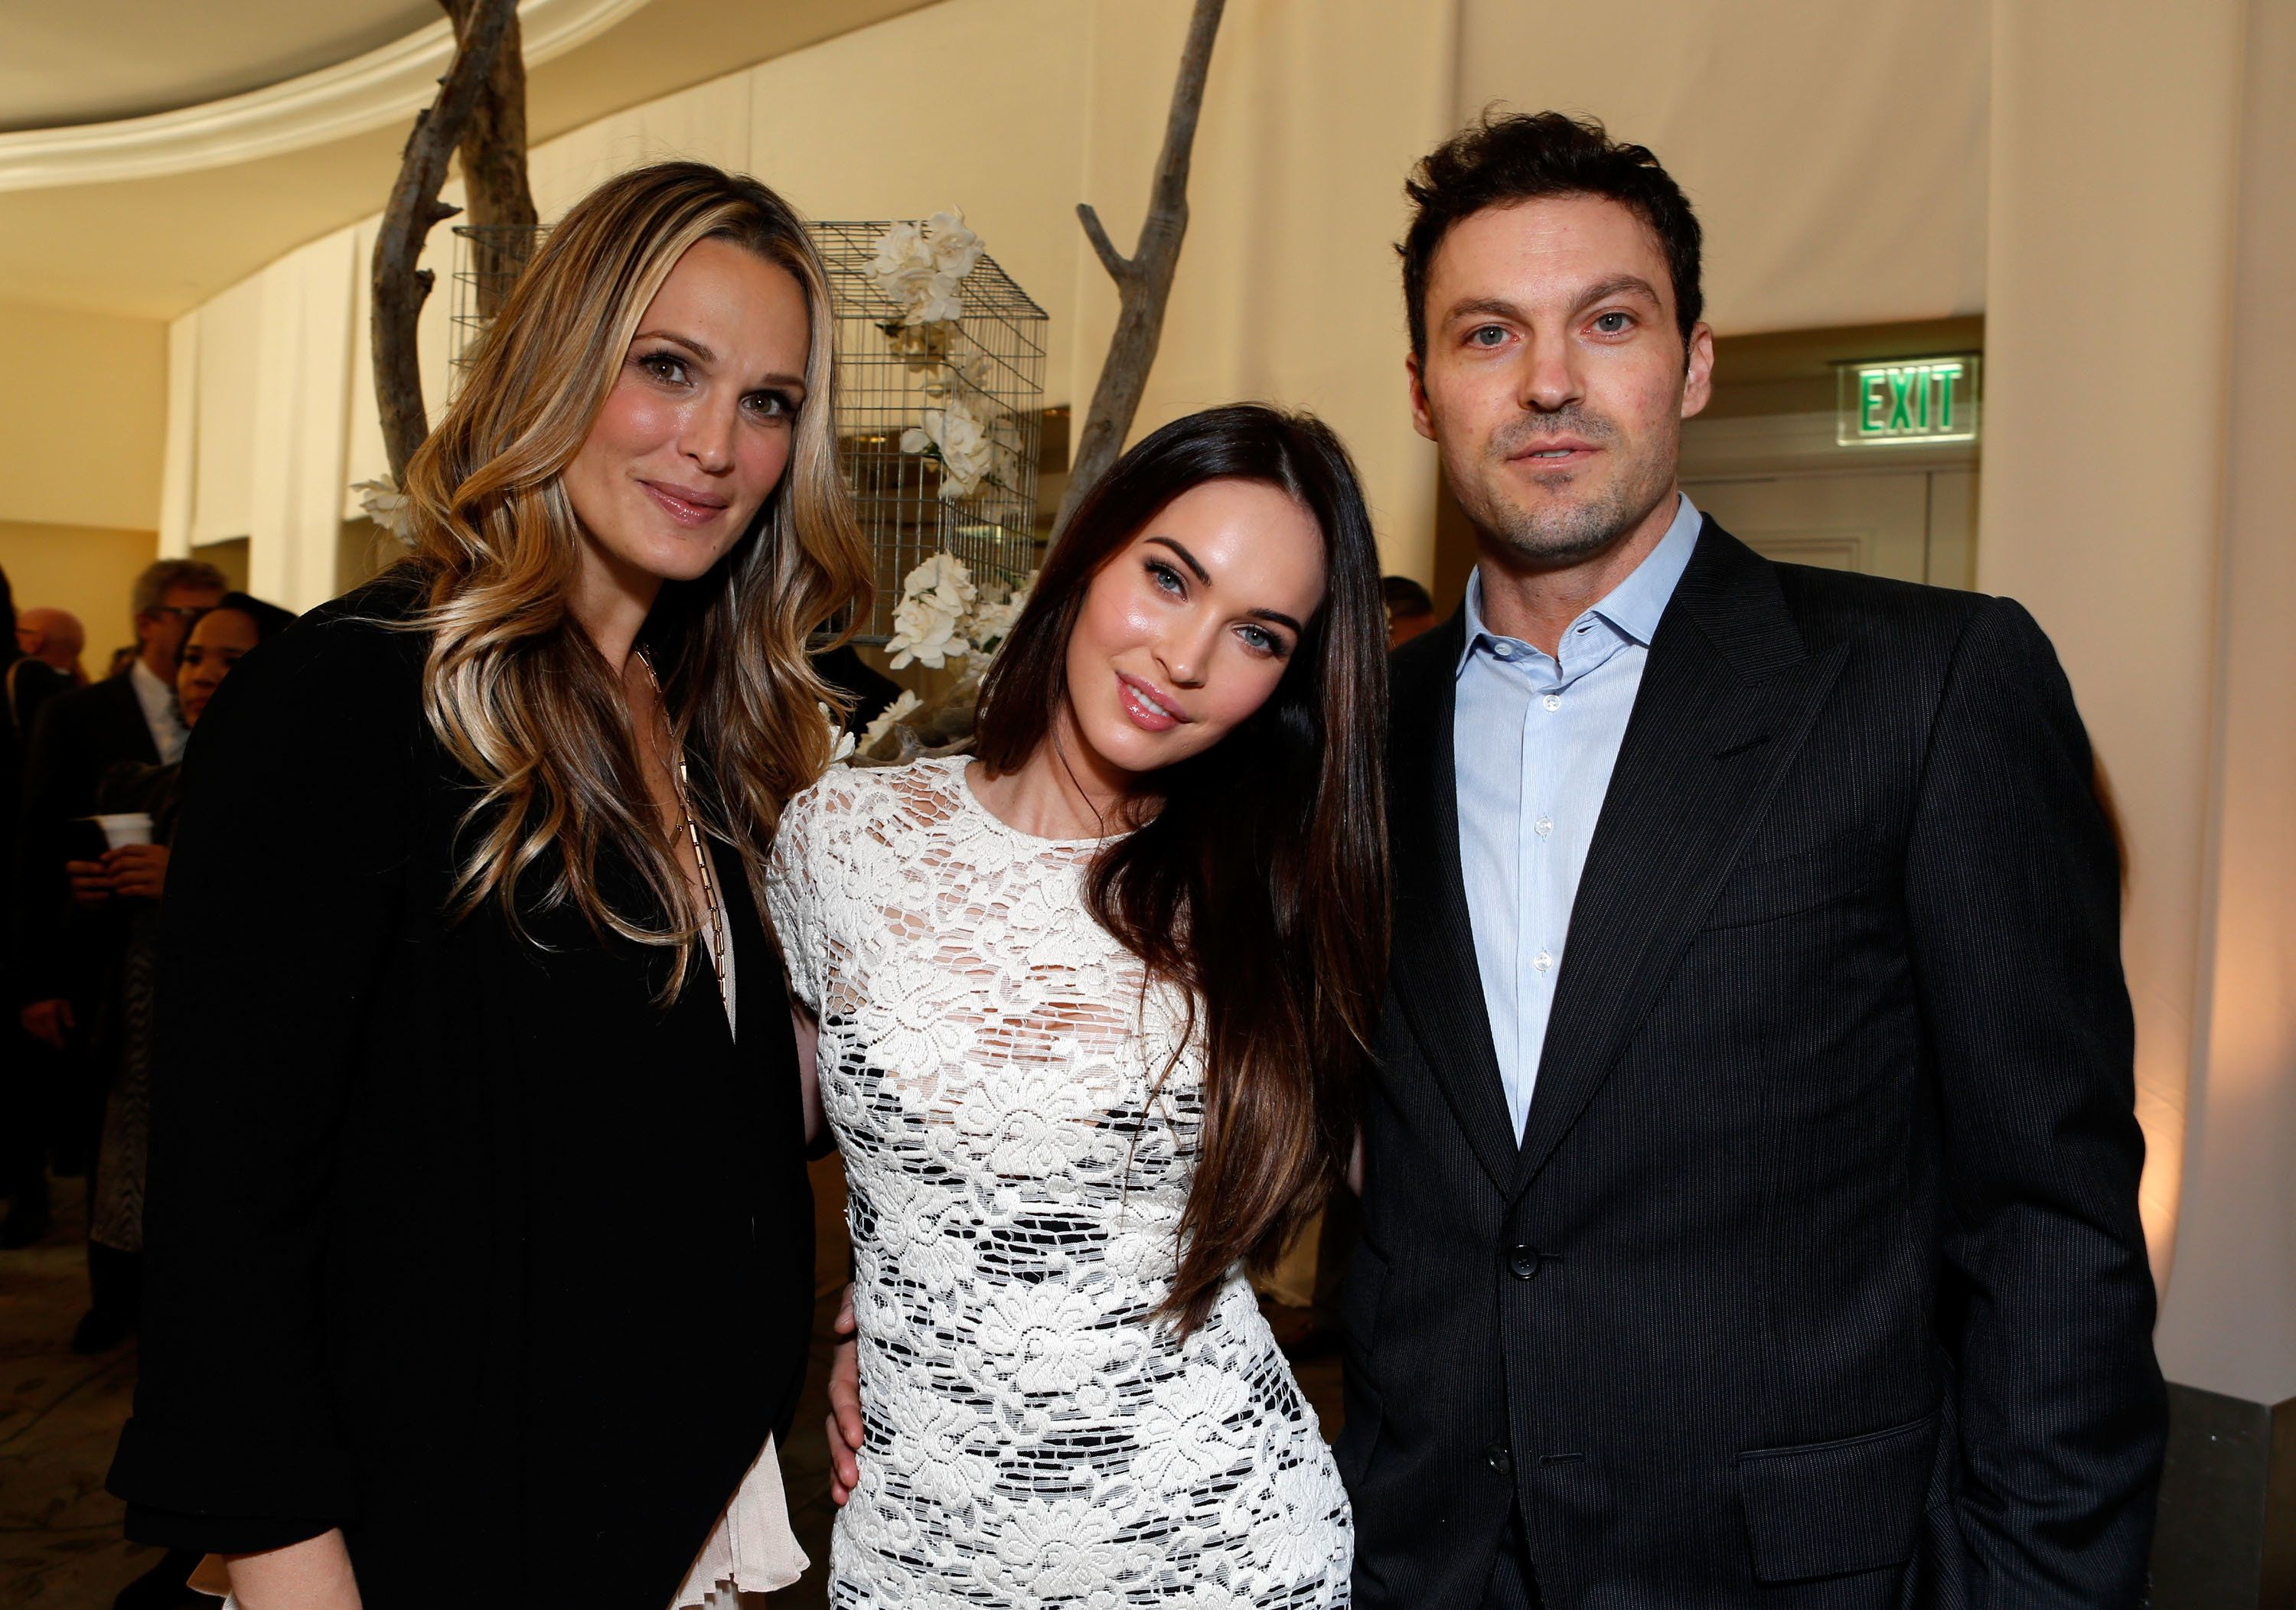 BEVERLY HILLS, CA - DECEMBER 07:  (L-R) Actors Molly Sims, Megan Fox and Brian Austin Green attend the 7th Annual March of Dimes Celebration of Babies, a Hollywood Luncheon, at the Beverly Hills Hotel on December 7, 2012 in Beverly Hills, California.  (Photo by Alexandra Wyman/Getty Images For March Of Dimes)